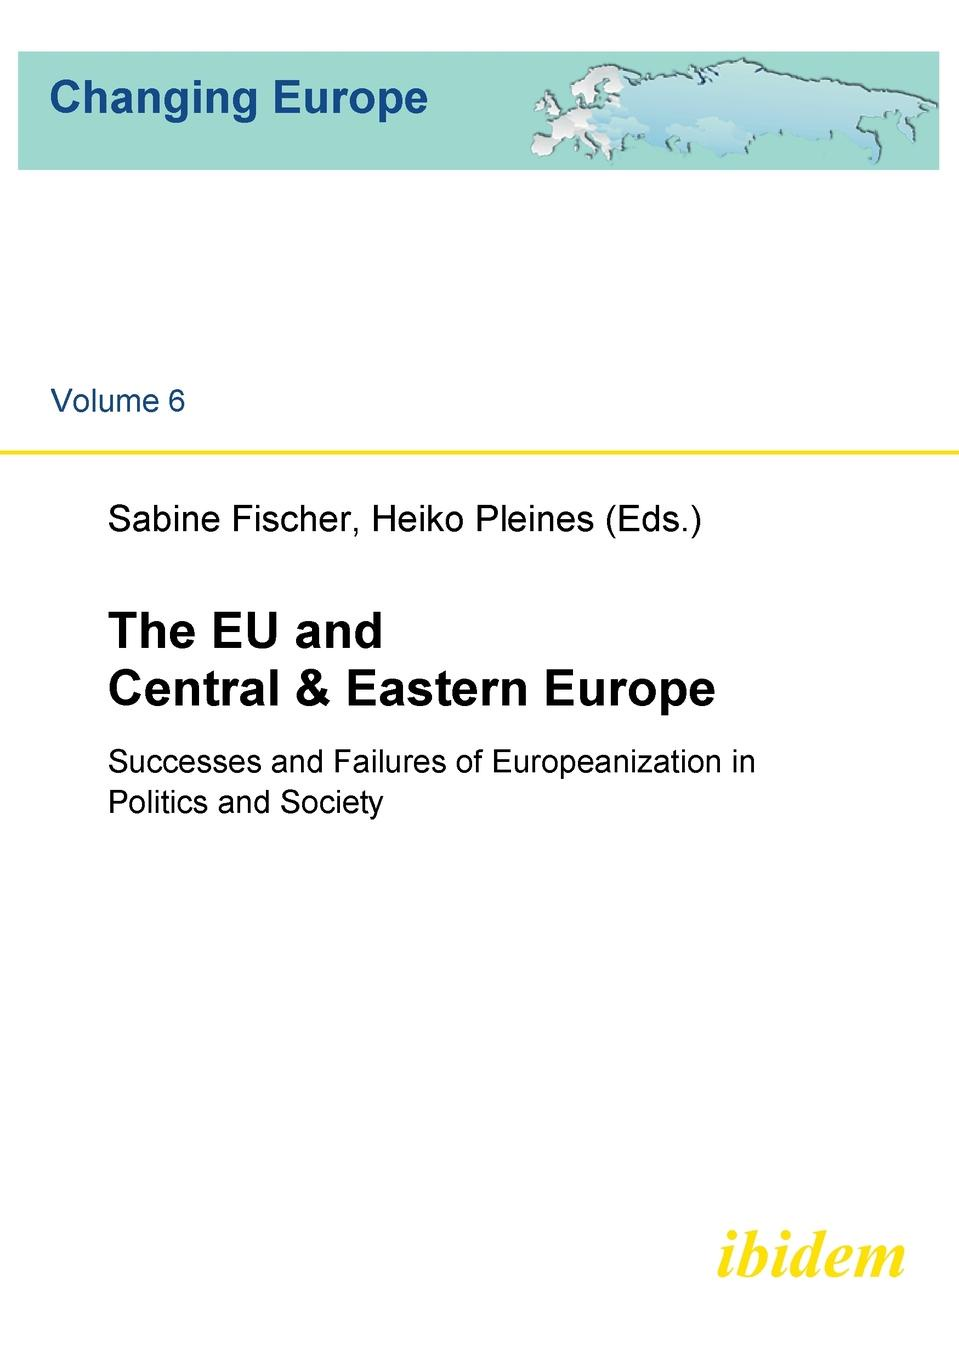 The EU and Central & Eastern Europe. Successes and Failures of Europeanization in Politics and Society somenath halder and malay mukhopadhyay changing livelihood of snake charmer in eastern india